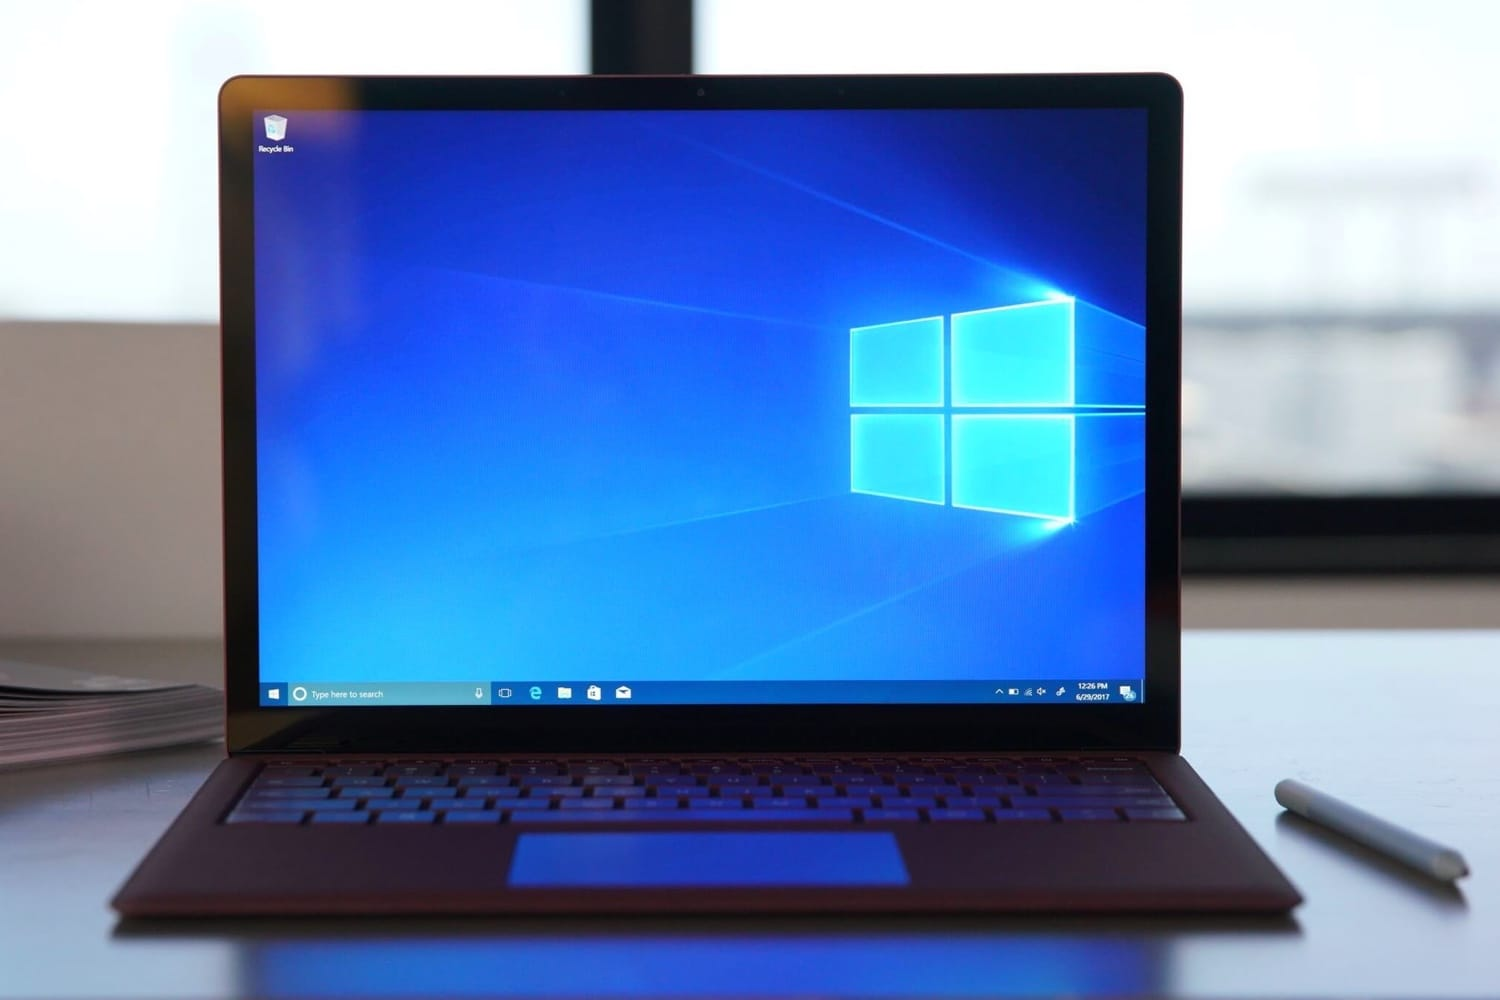 Windows 10 массово крадет пароли и переписку пользователей